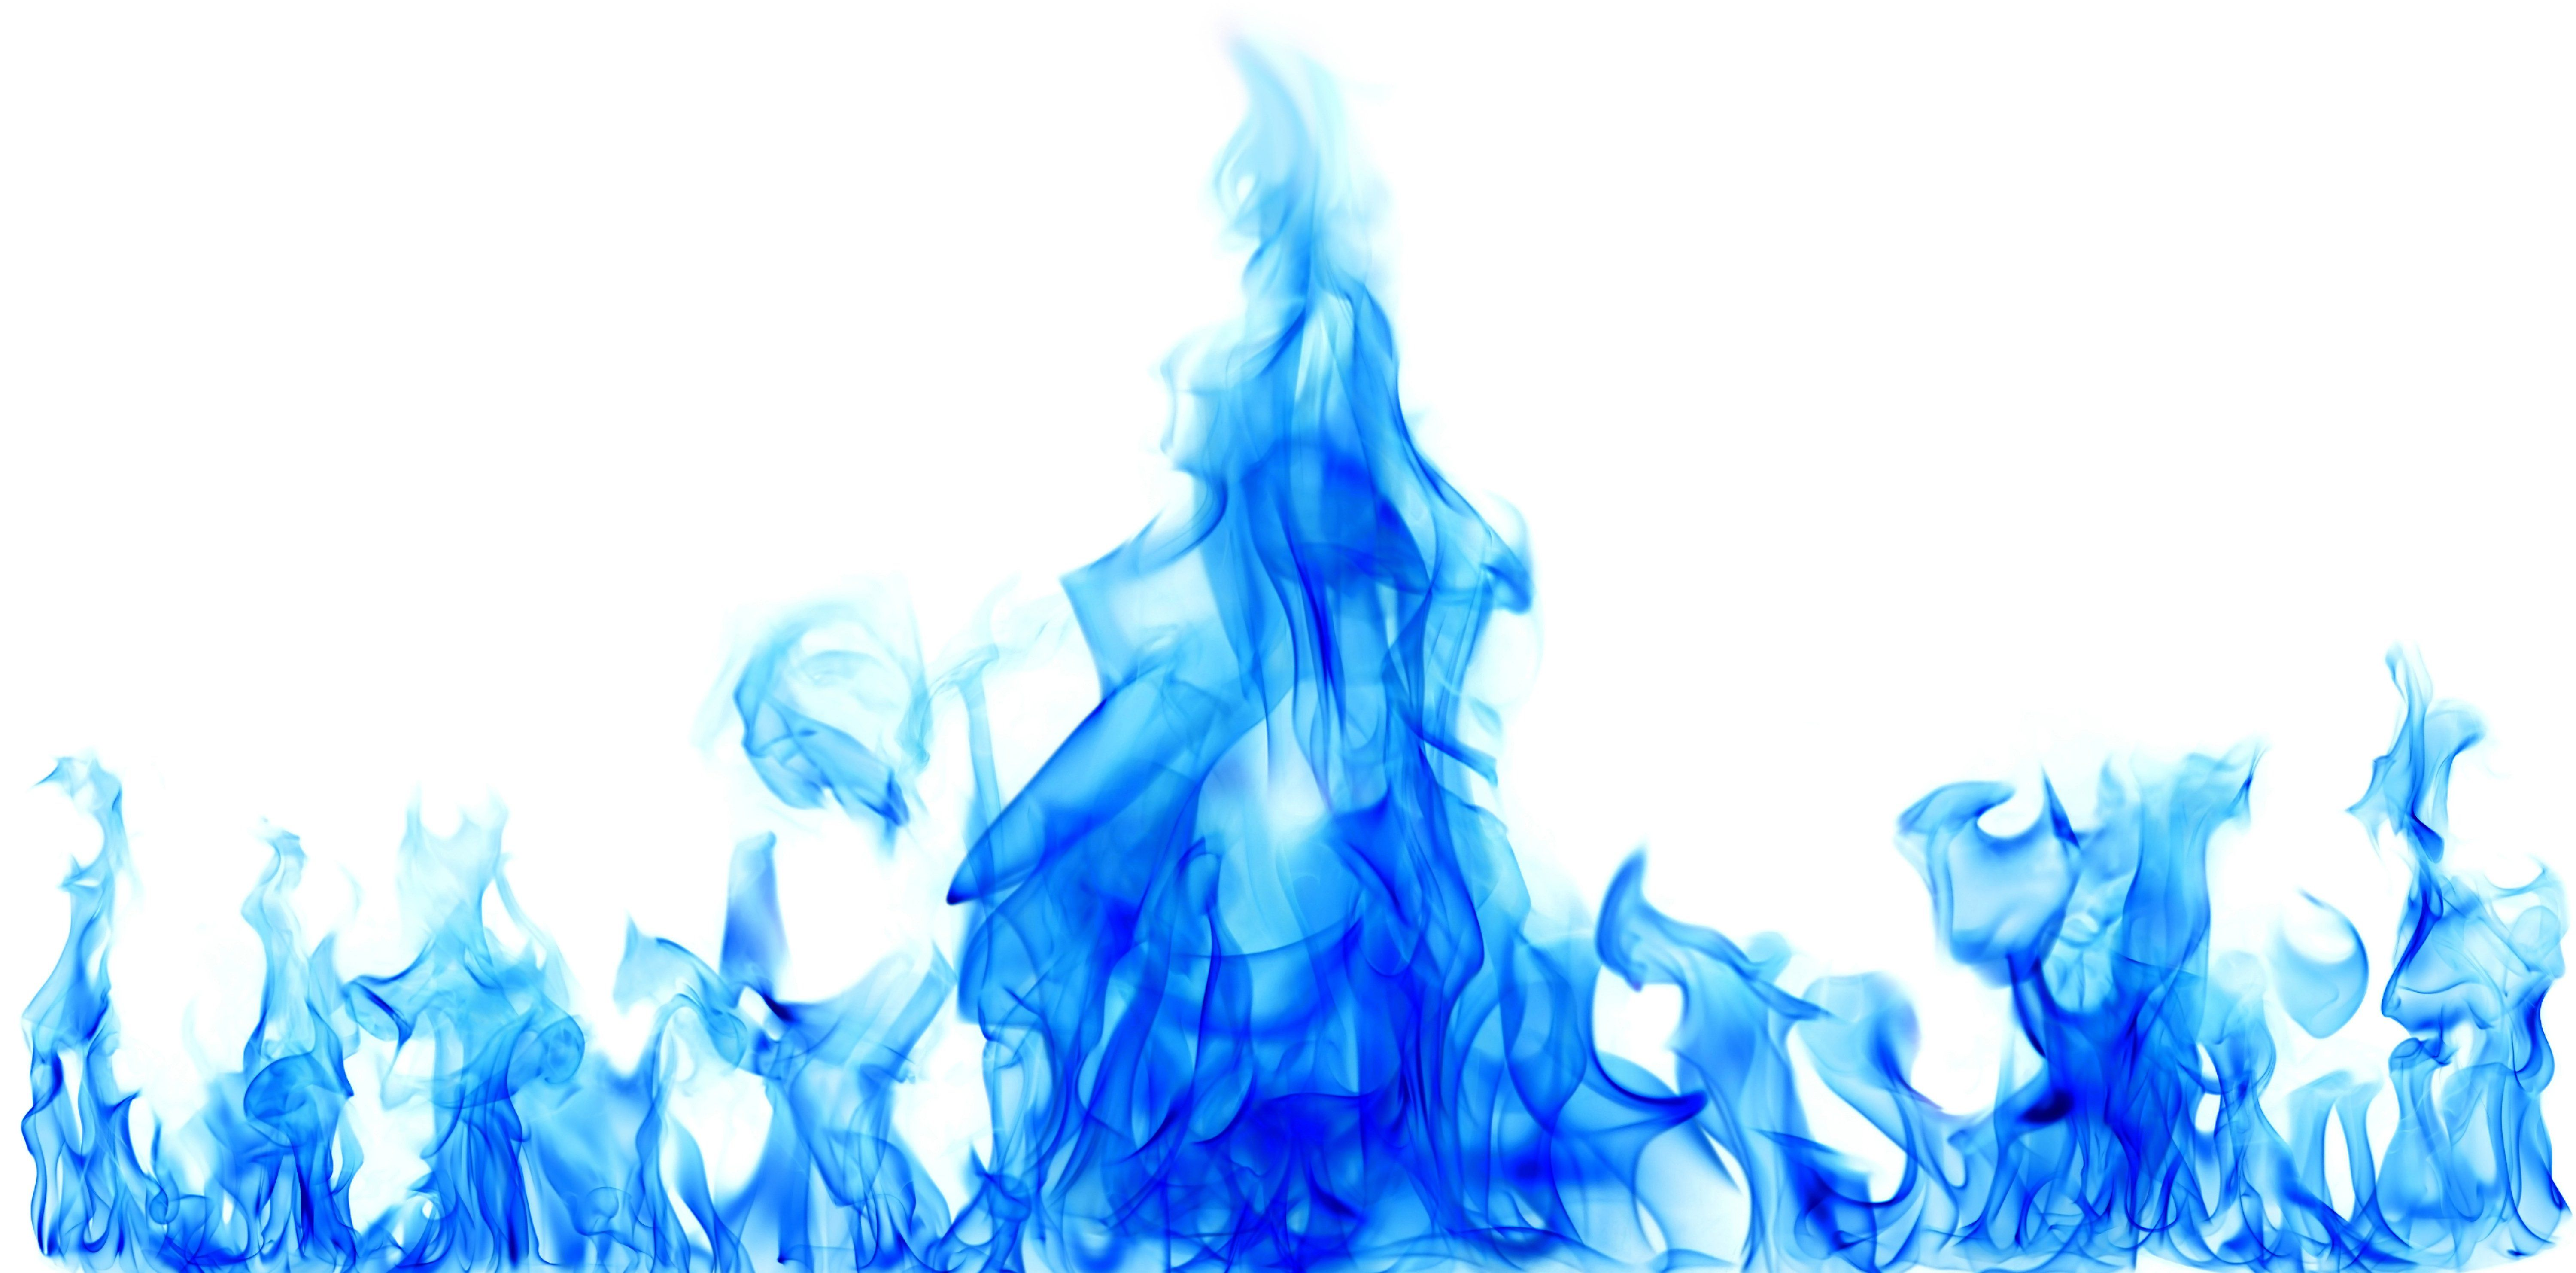 blue flames png transparent 34525 free icons and png backgrounds